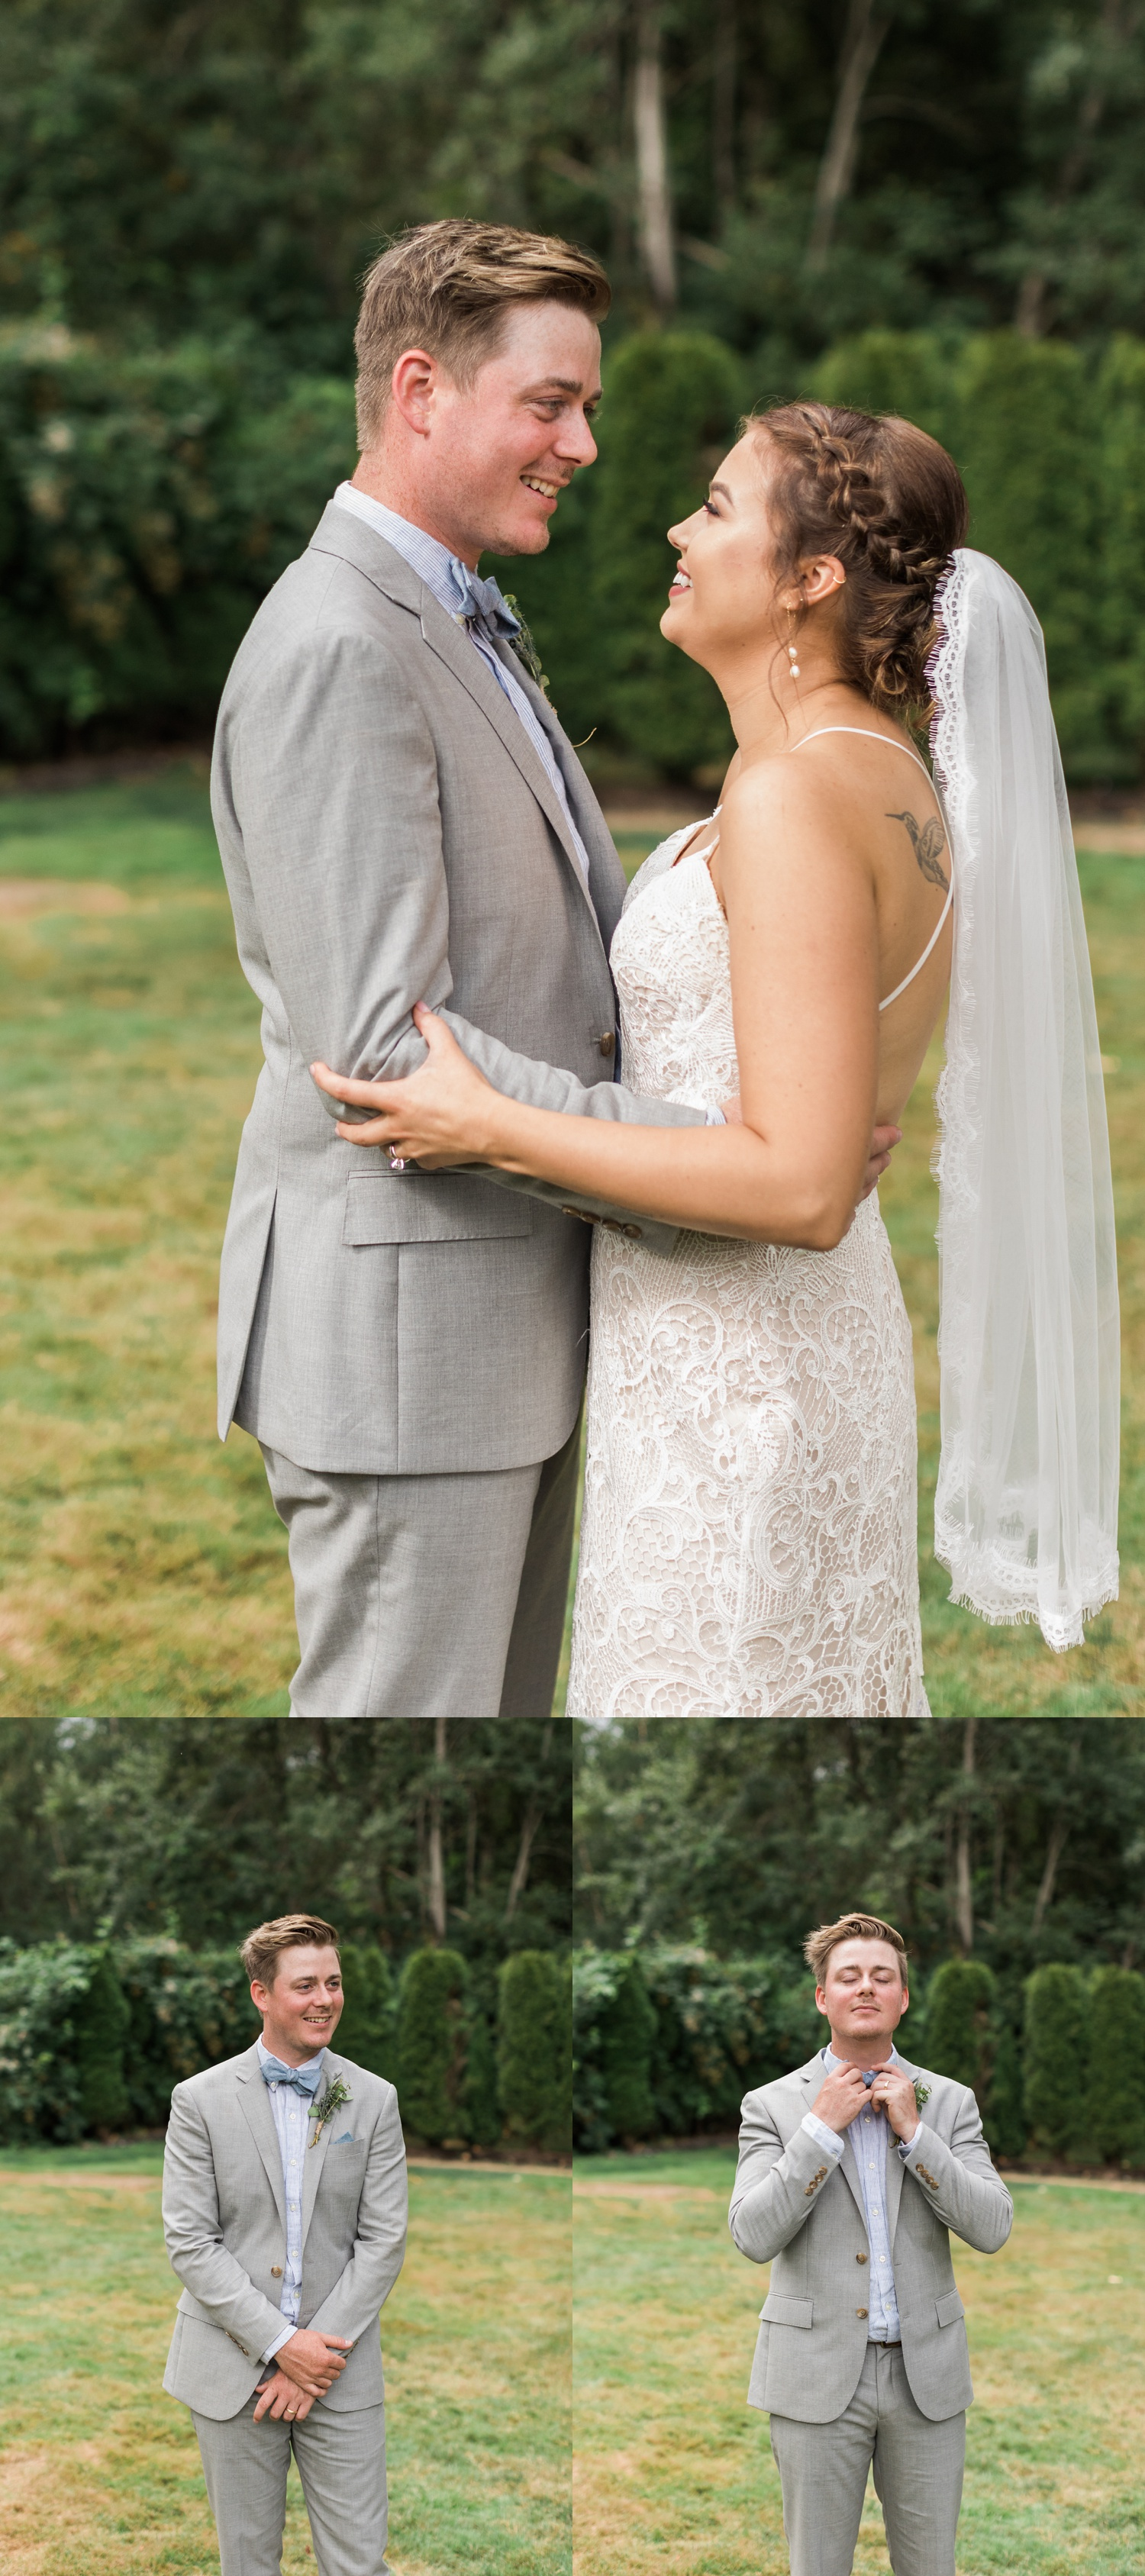 A bride and groom embrace before their summer wedding at Maroni Meadows in Snohomish, a wedding venue near Seattle, WA. | Joanna Monger Photography | Seattle & Snohomish Photographer